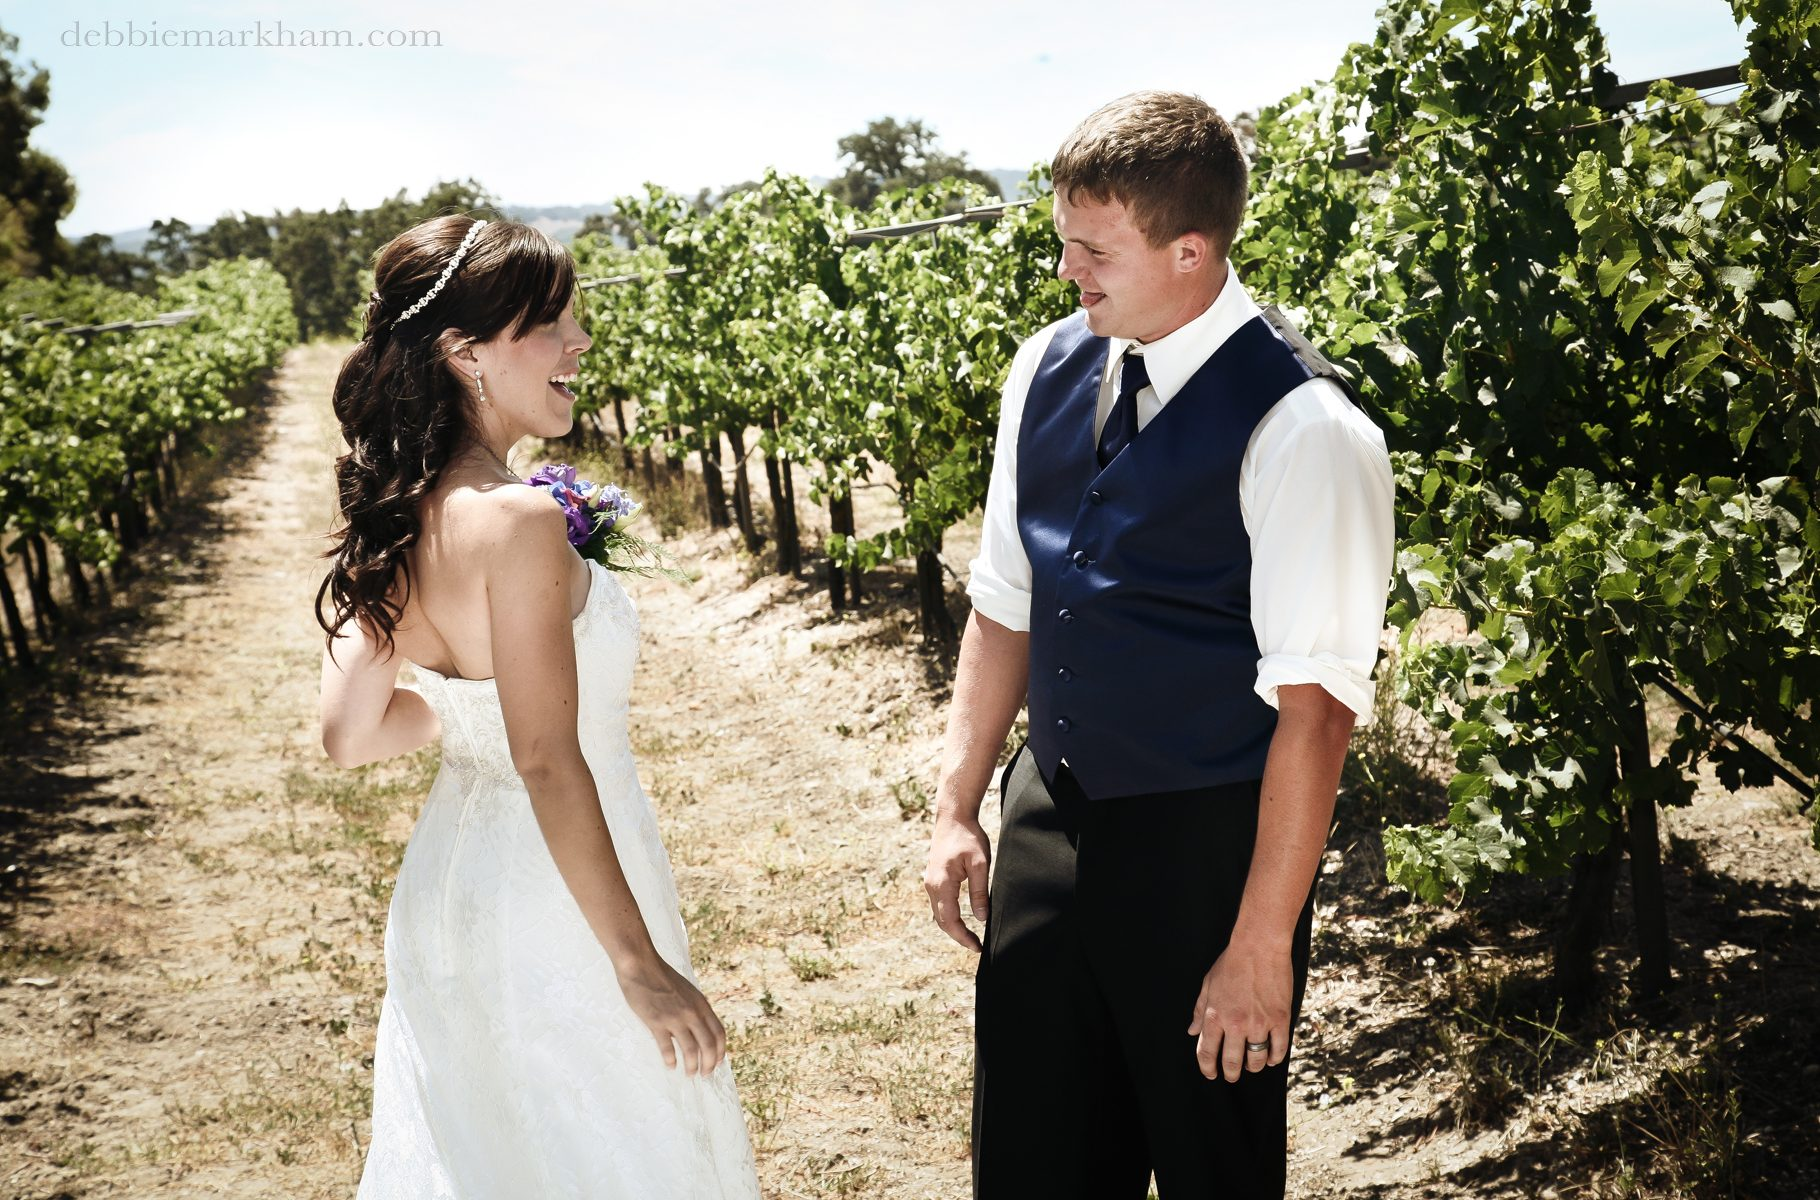 Paso Robles Wine Country Wedding at Castoro Winery photography